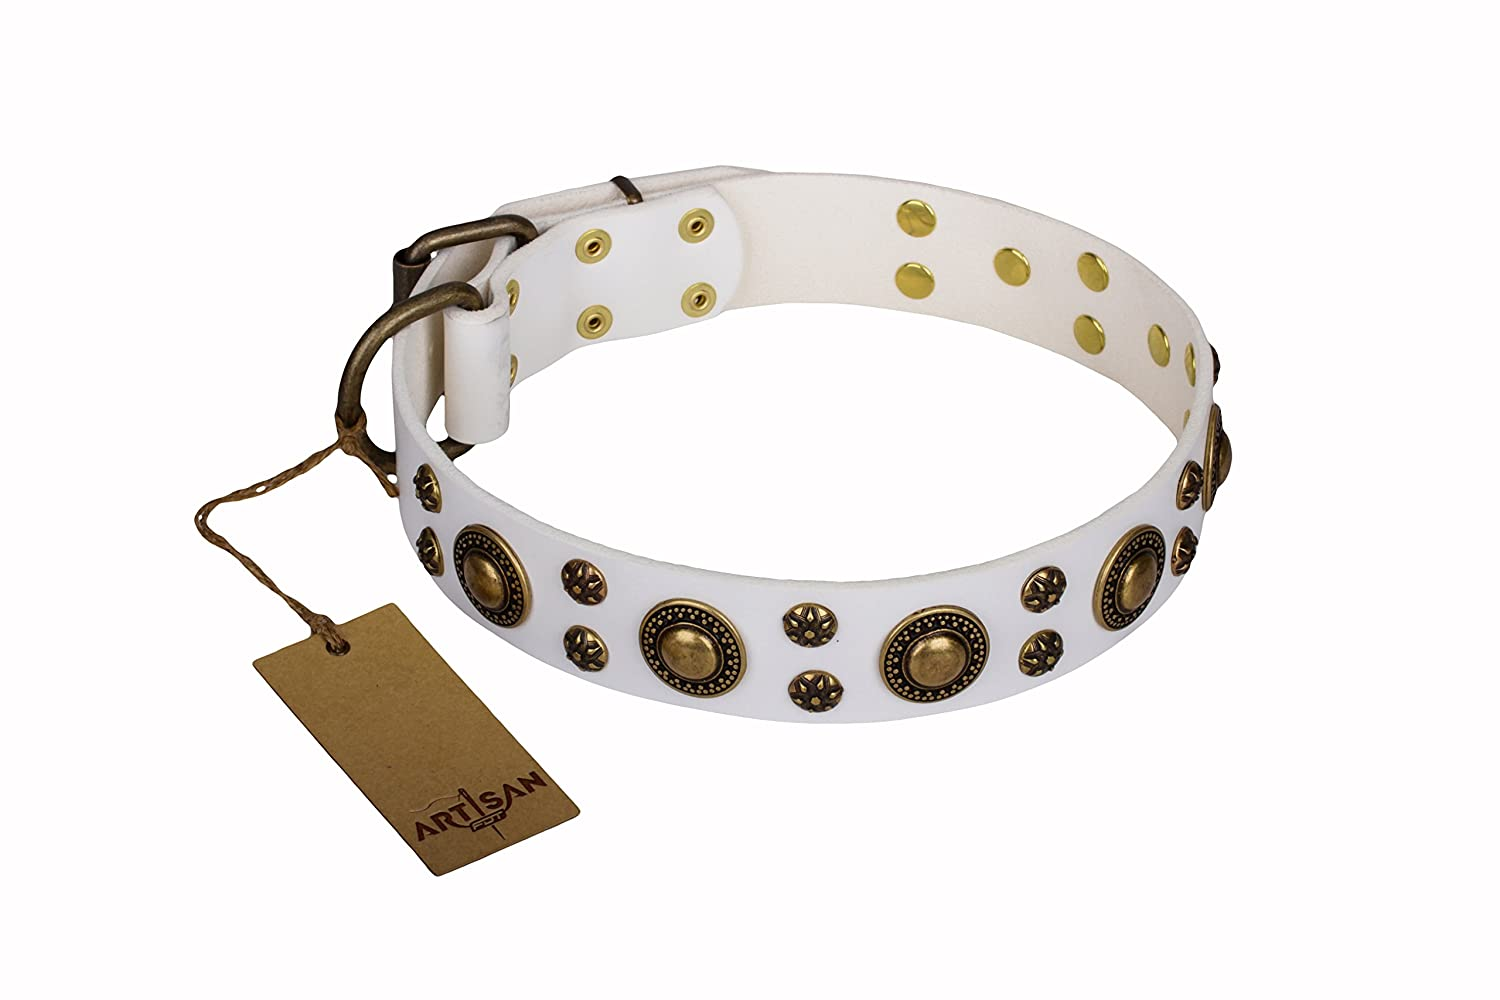 36 inch 36 inch White Leather Dog Collar with Brass Plated Decor  golden Purity  Handcrafted by Artisan